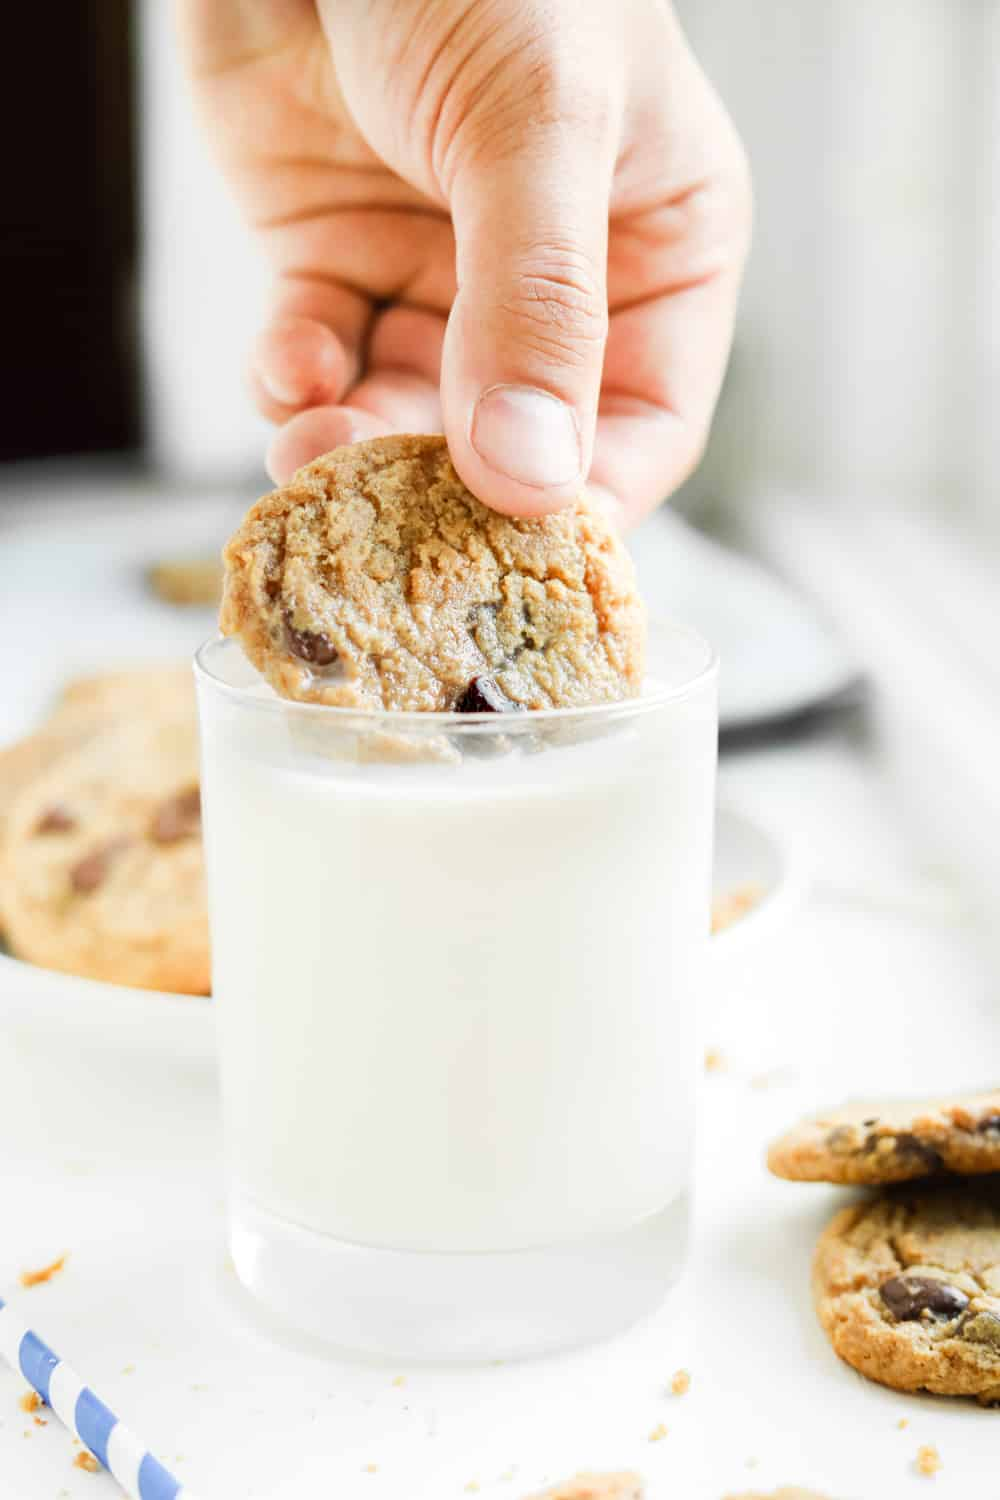 A chocolate chip cookie being dipped in a glass of milk.